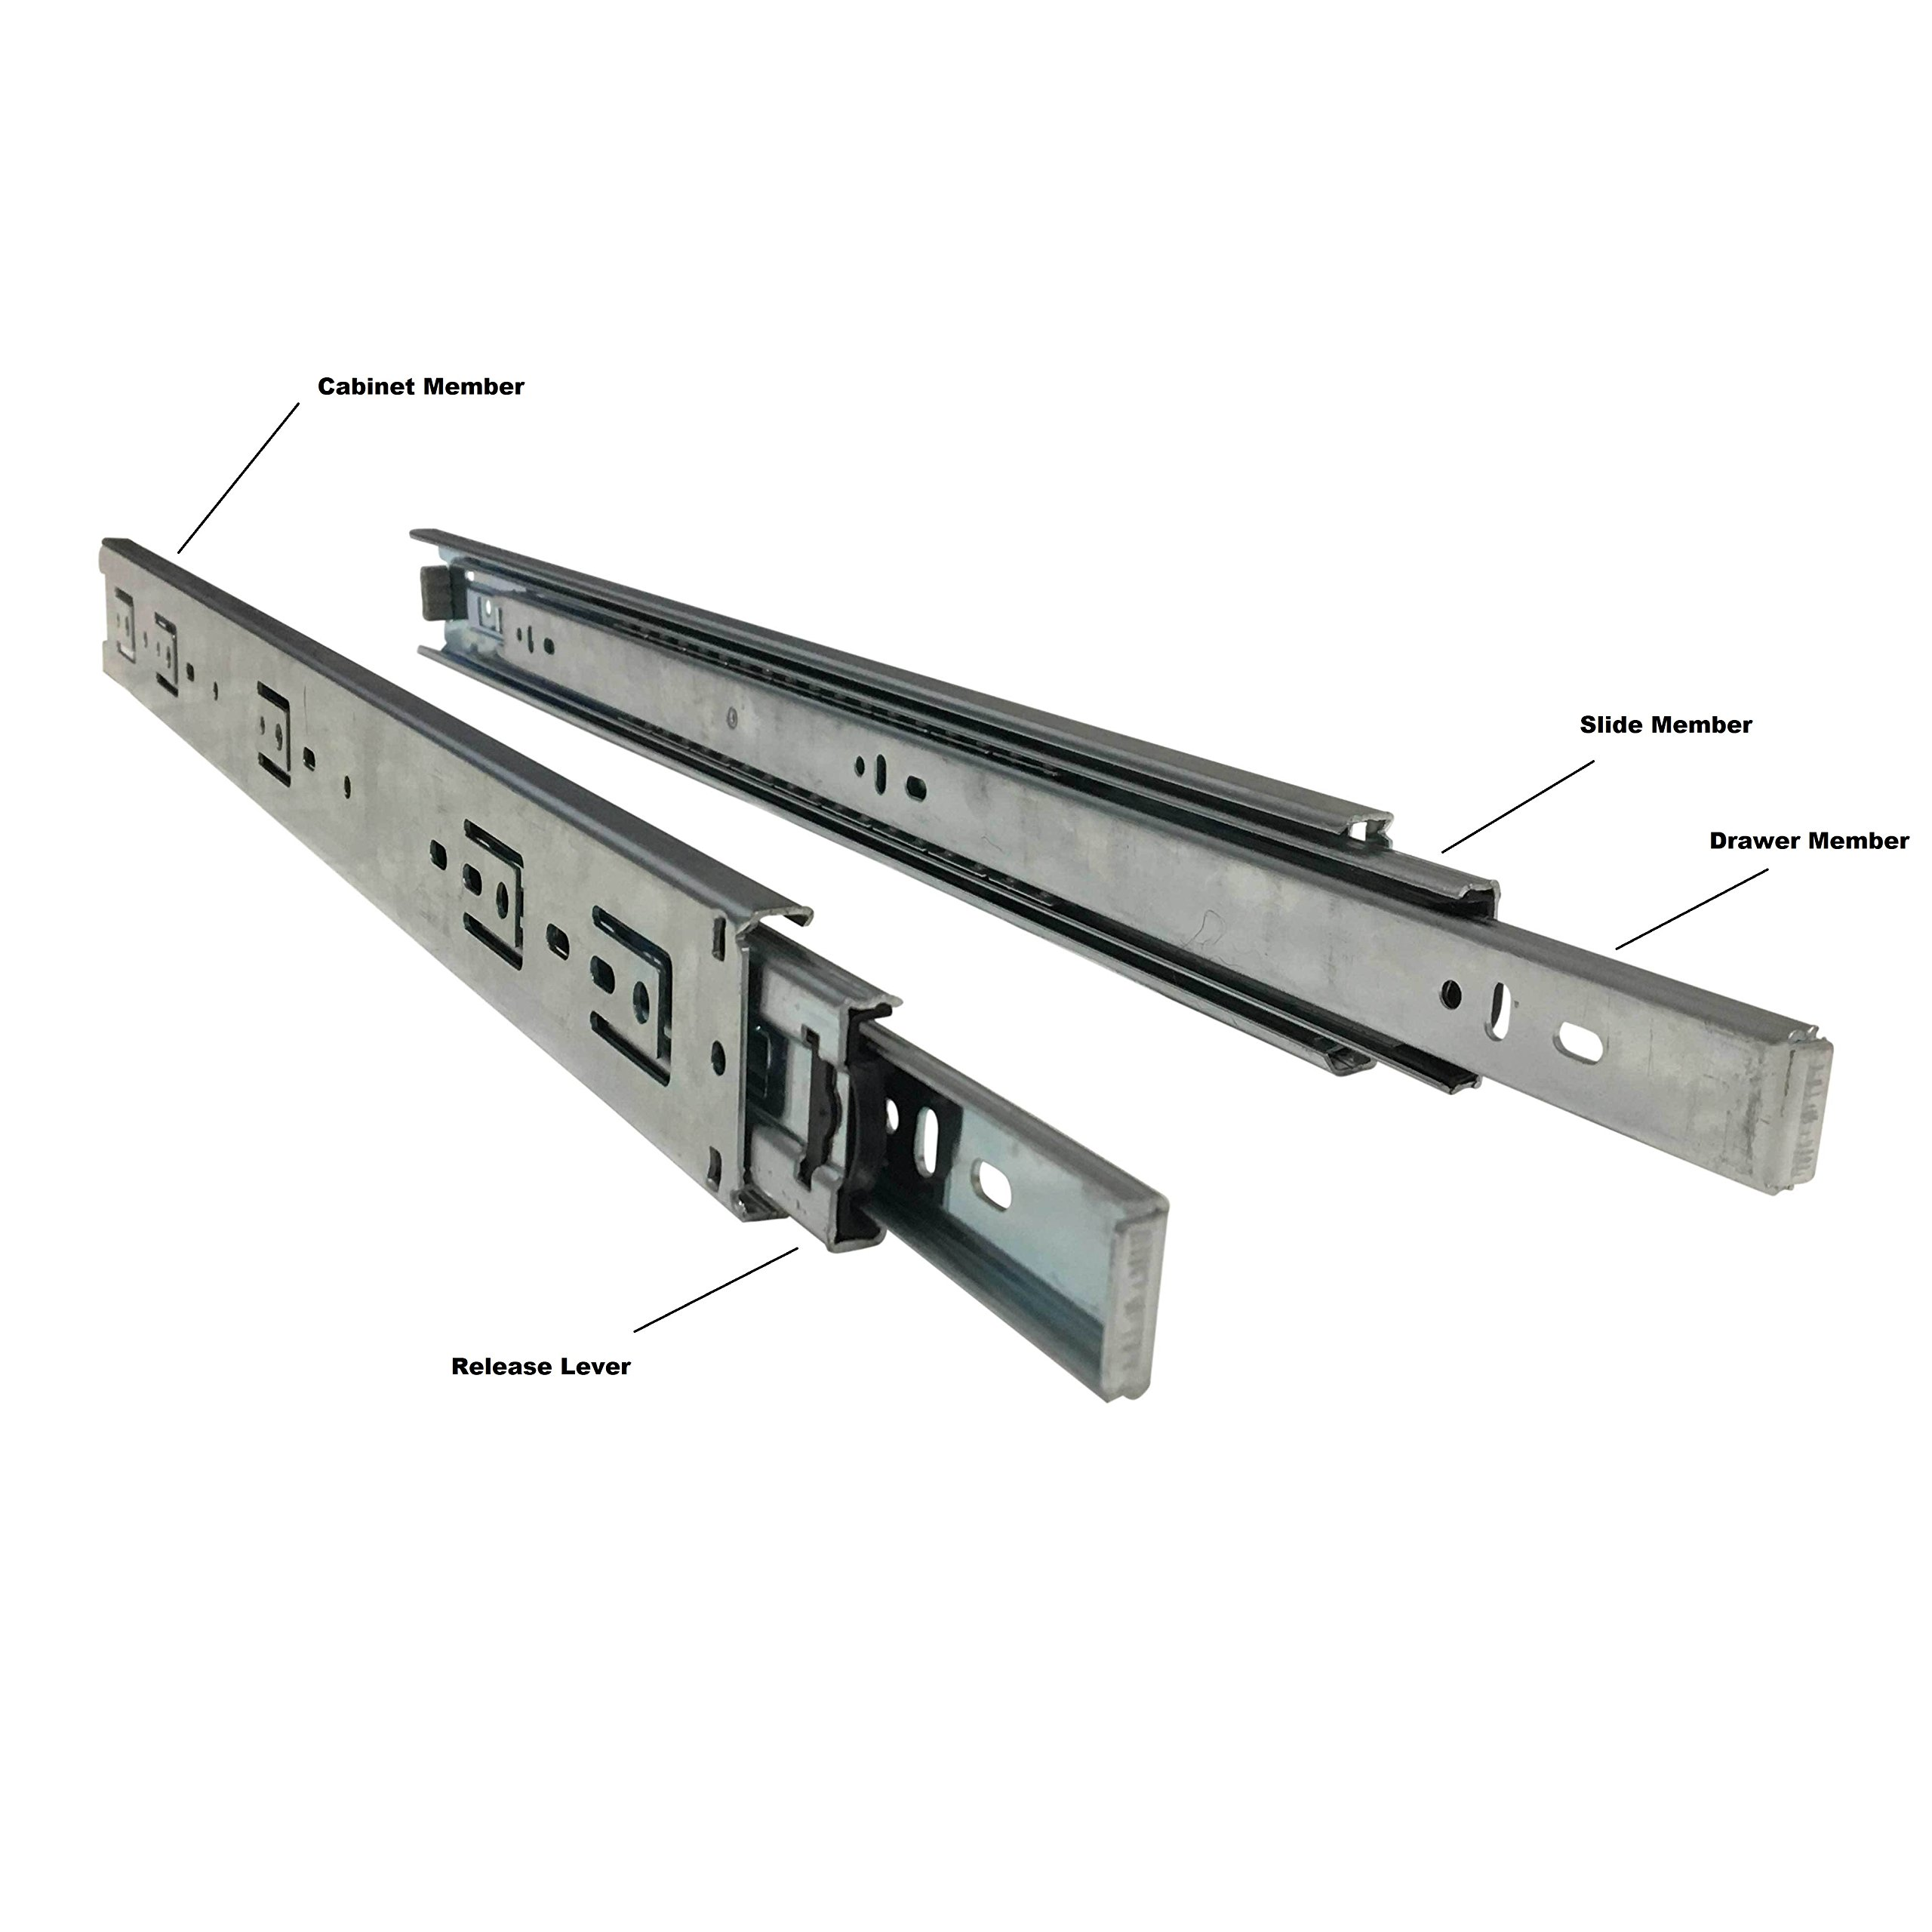 Firgelli Automations Full Extension Drawer Slides 400 lb Capacity (50'') by Firgelli Automations (Image #3)